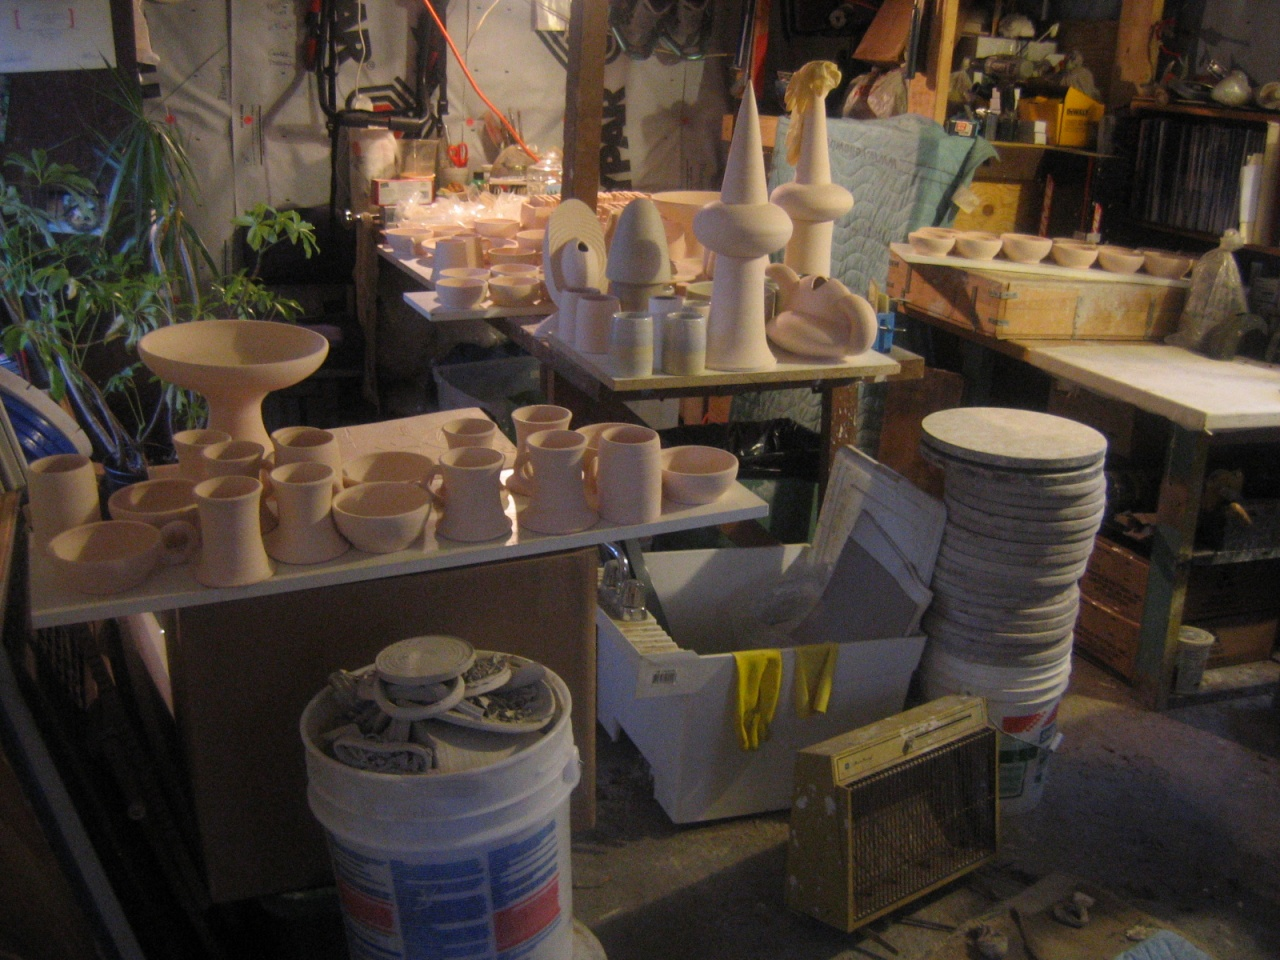 Bisqued pots ready to glaze